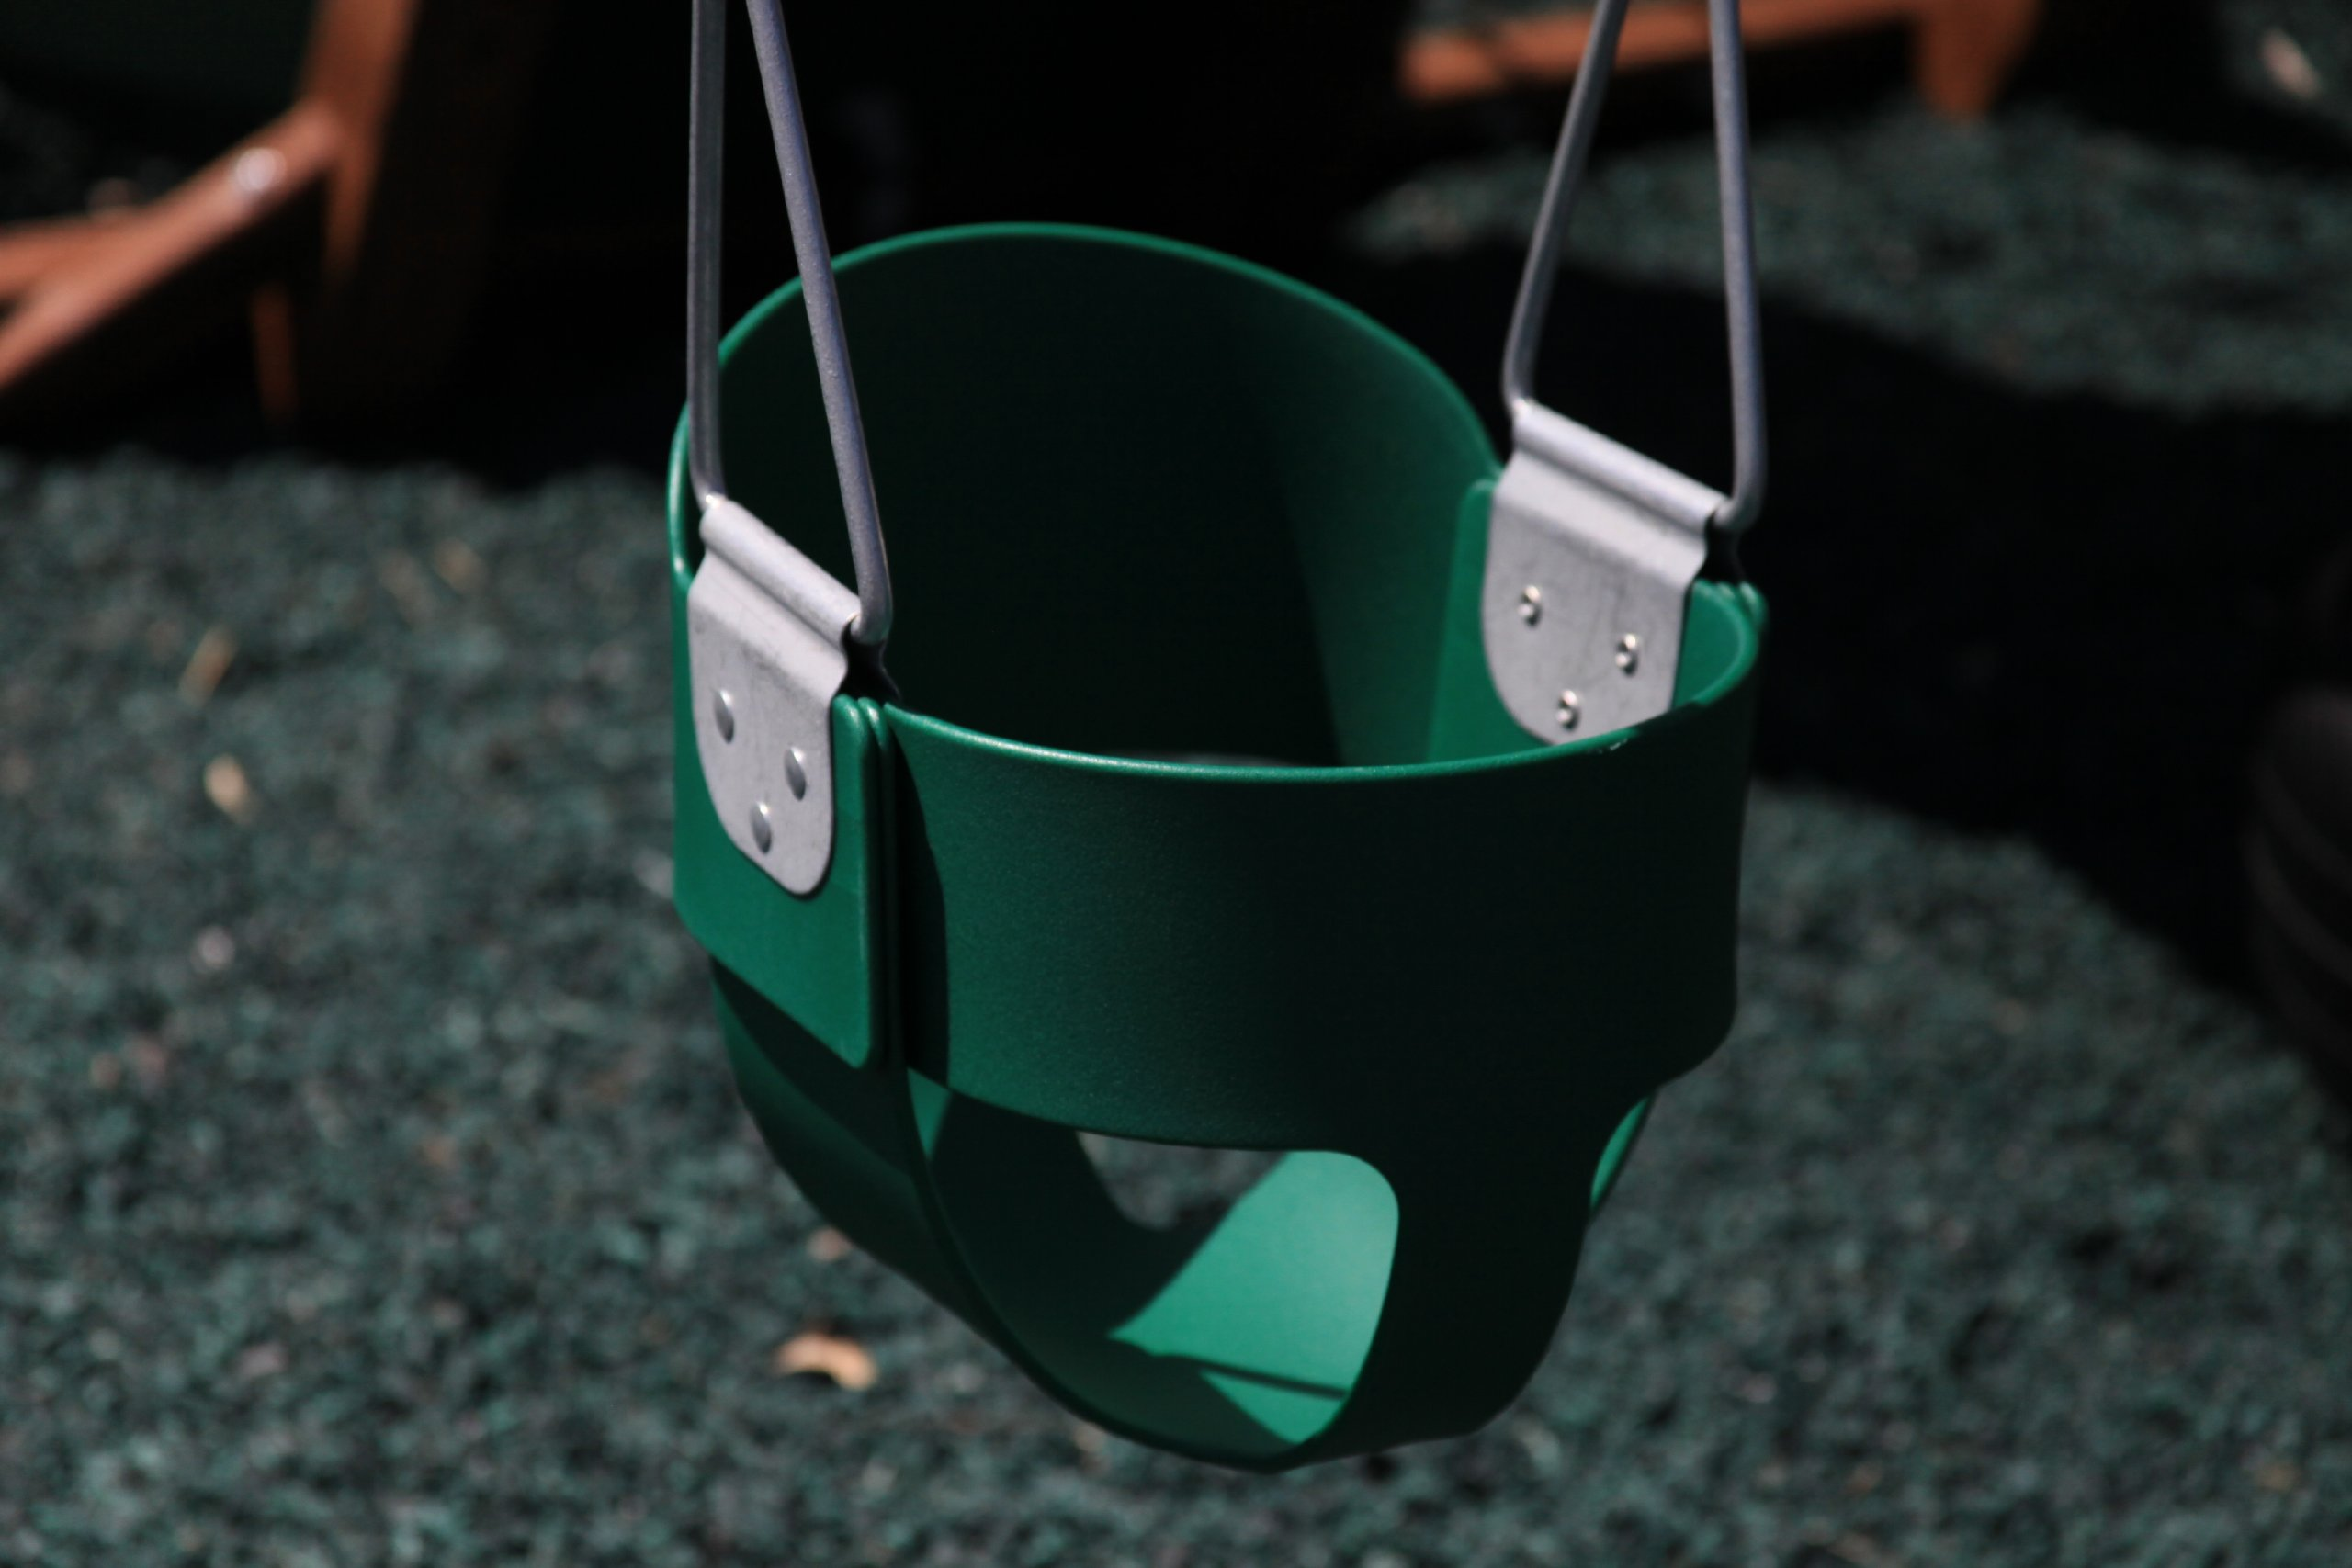 Swing Kingdom Green Rubber Infant Swing by Swing Kingdom